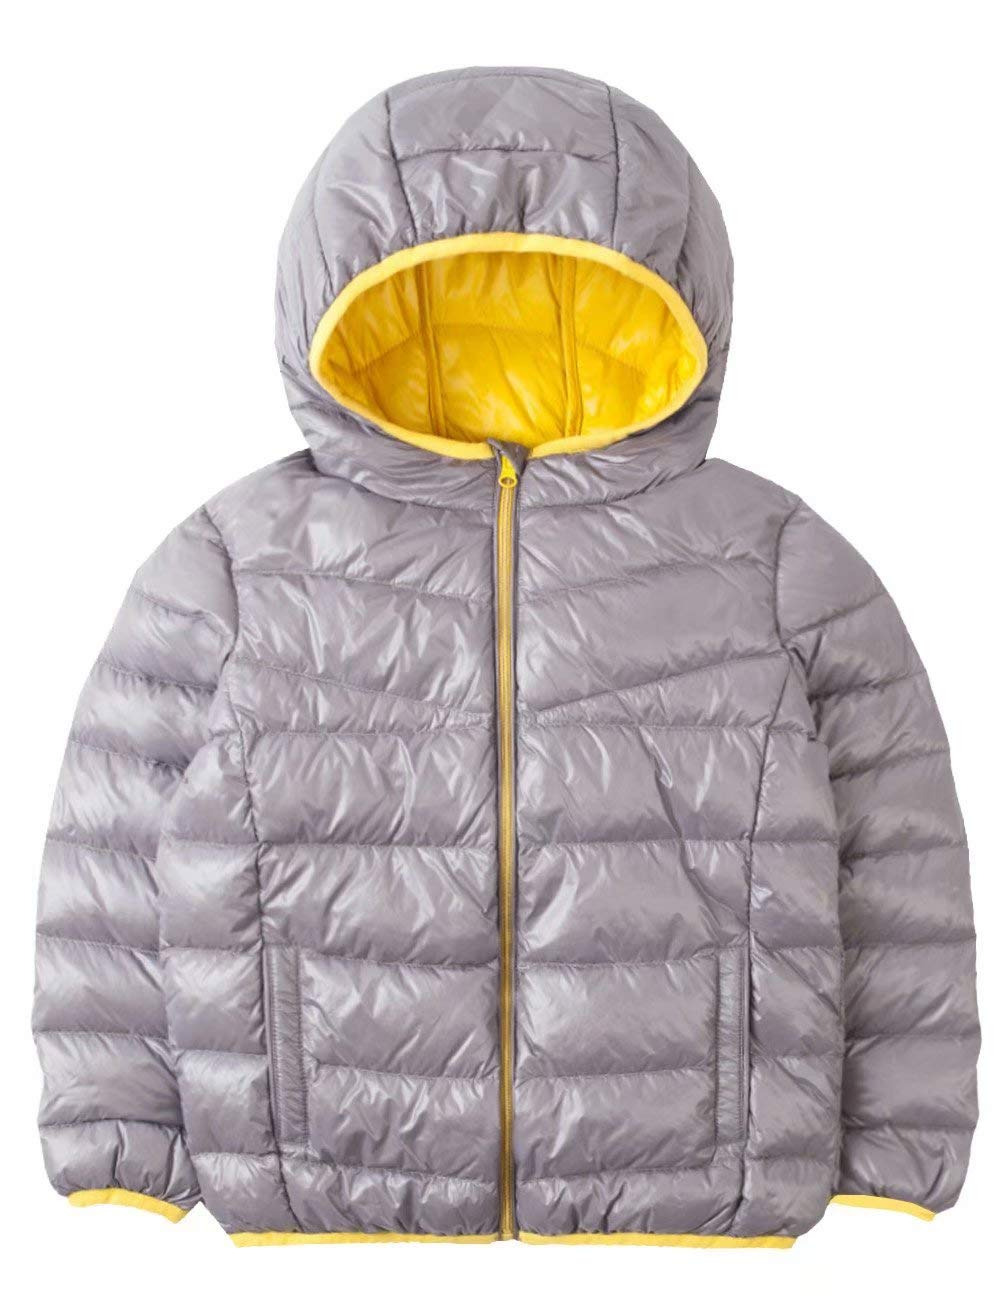 Spring&Gege Kids' Quilted Packable Hoodie Lightweight Puffer Jacket Windproof Outwear Children Warm Duck Down Coat for Boys and Girls Size 5-6 Years Gray/Yellow